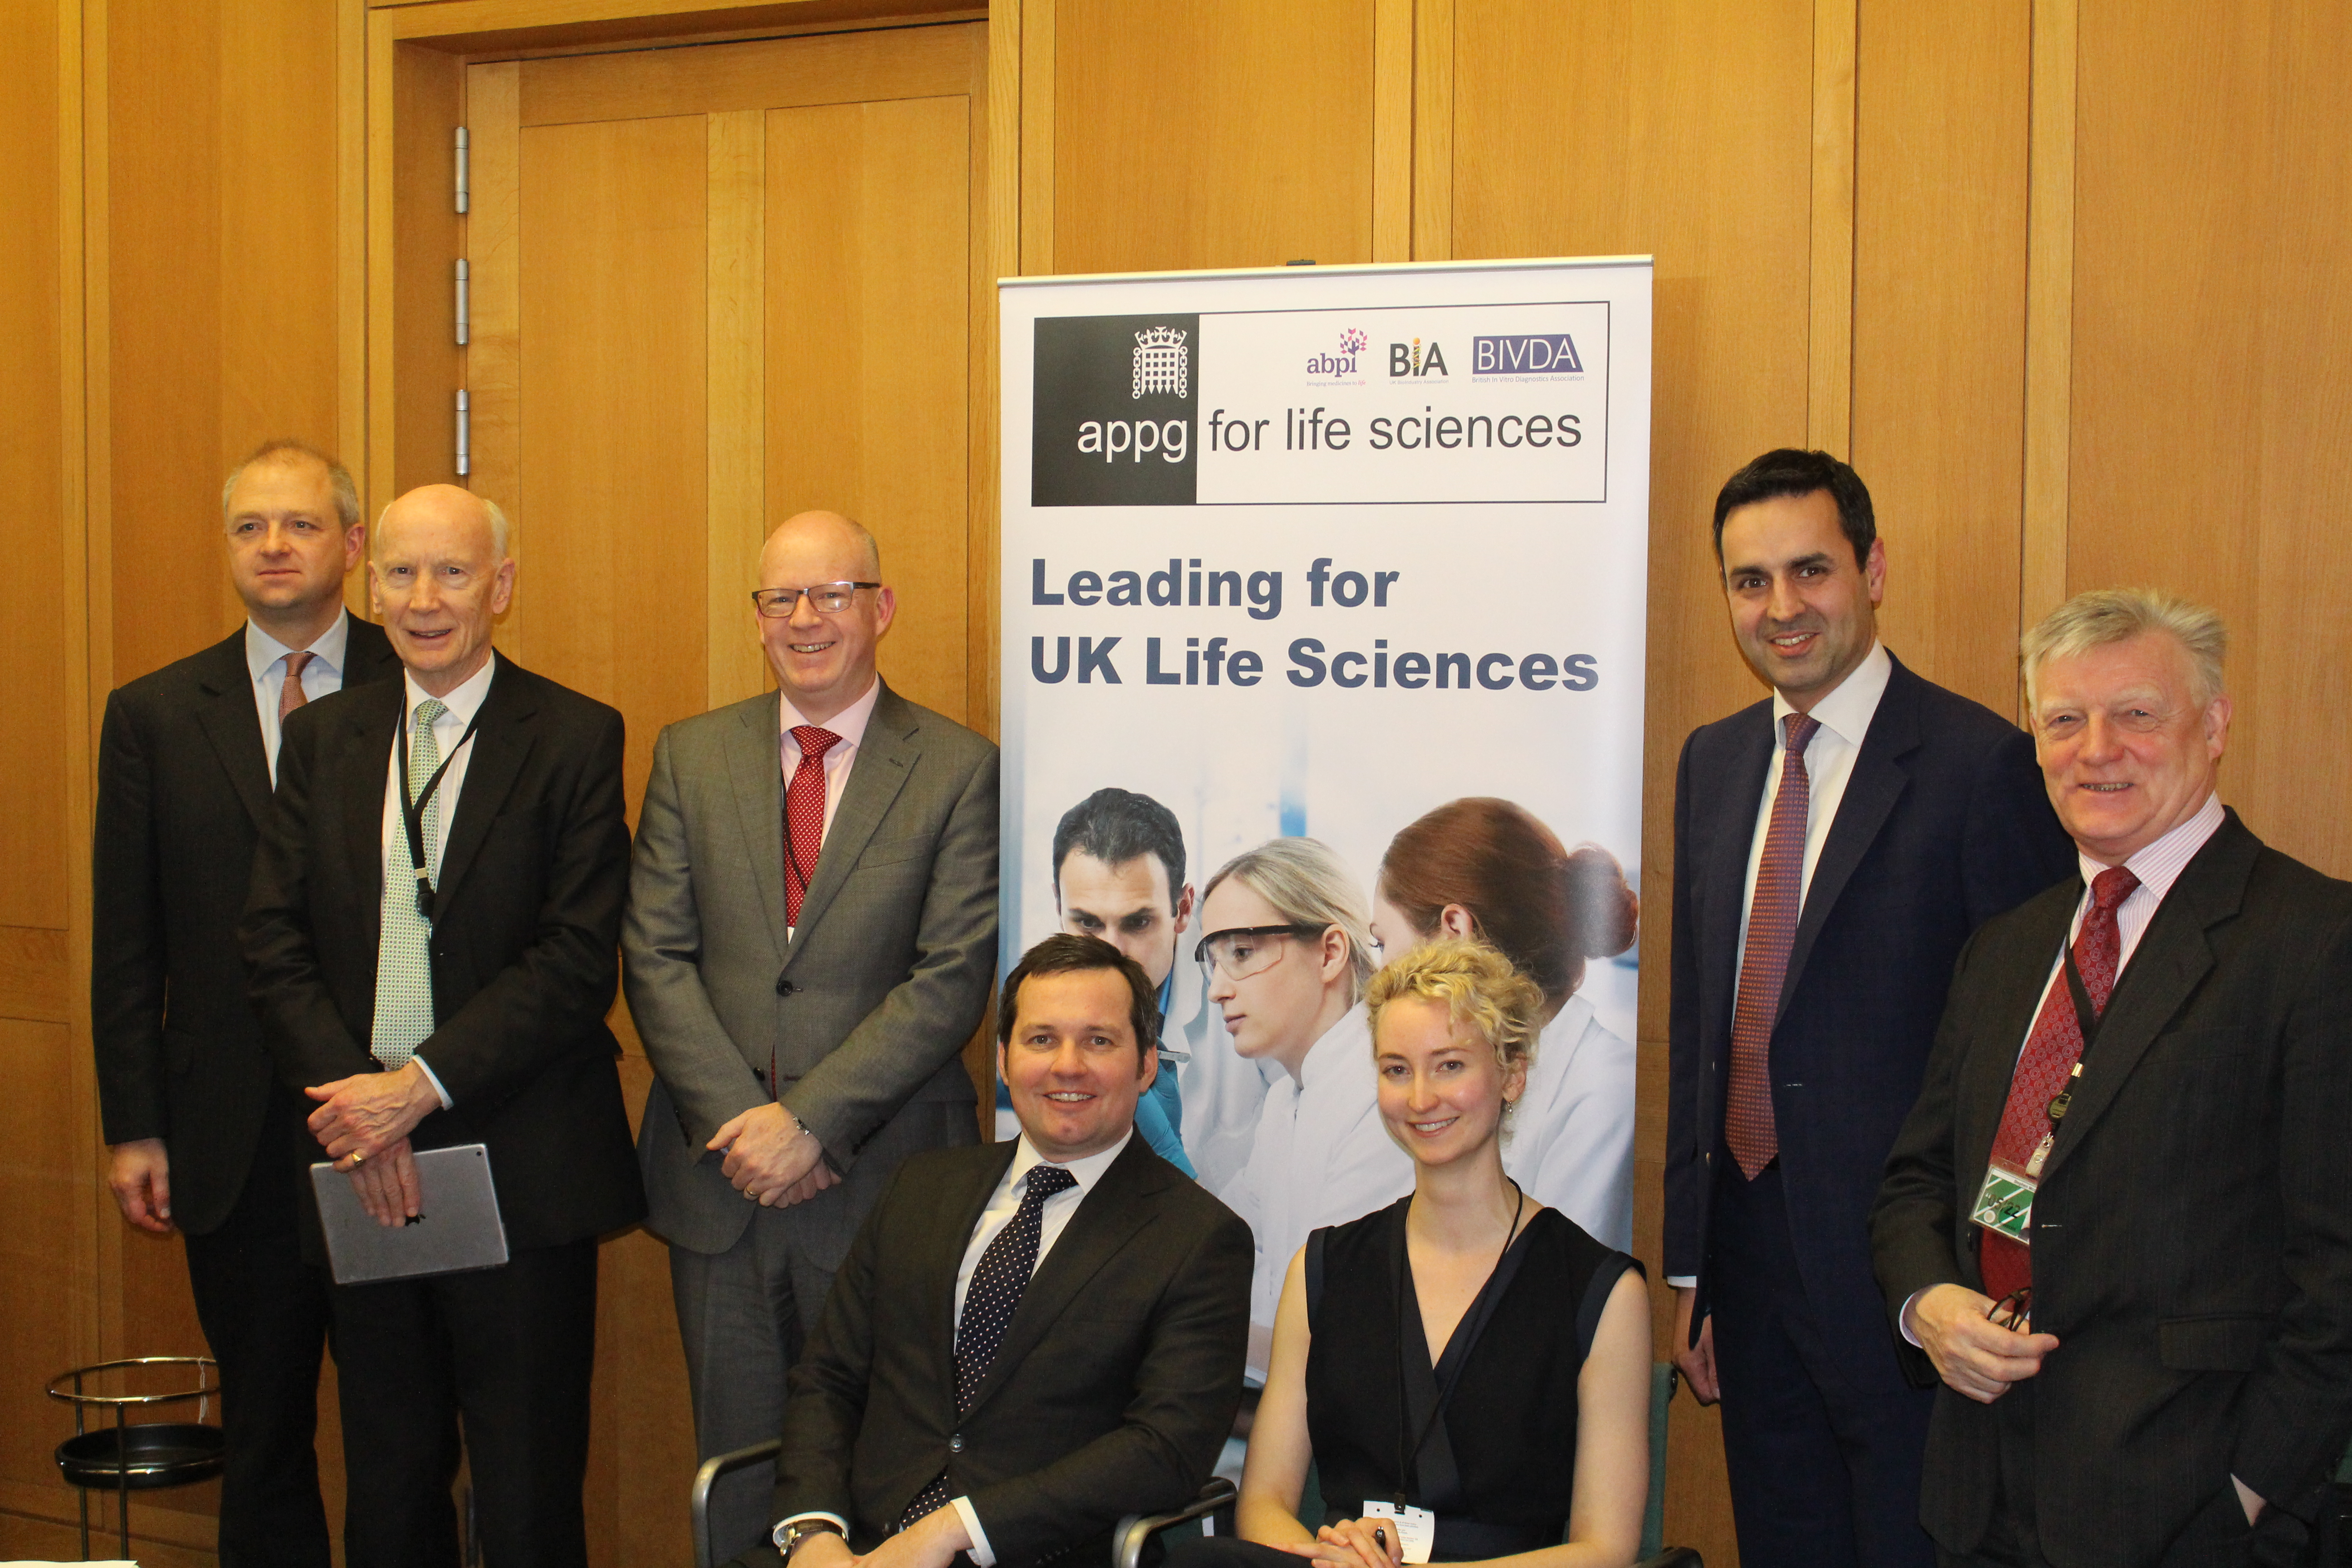 BIVDA, ABPI and BIA Re-Launch APPG for Life Sciences